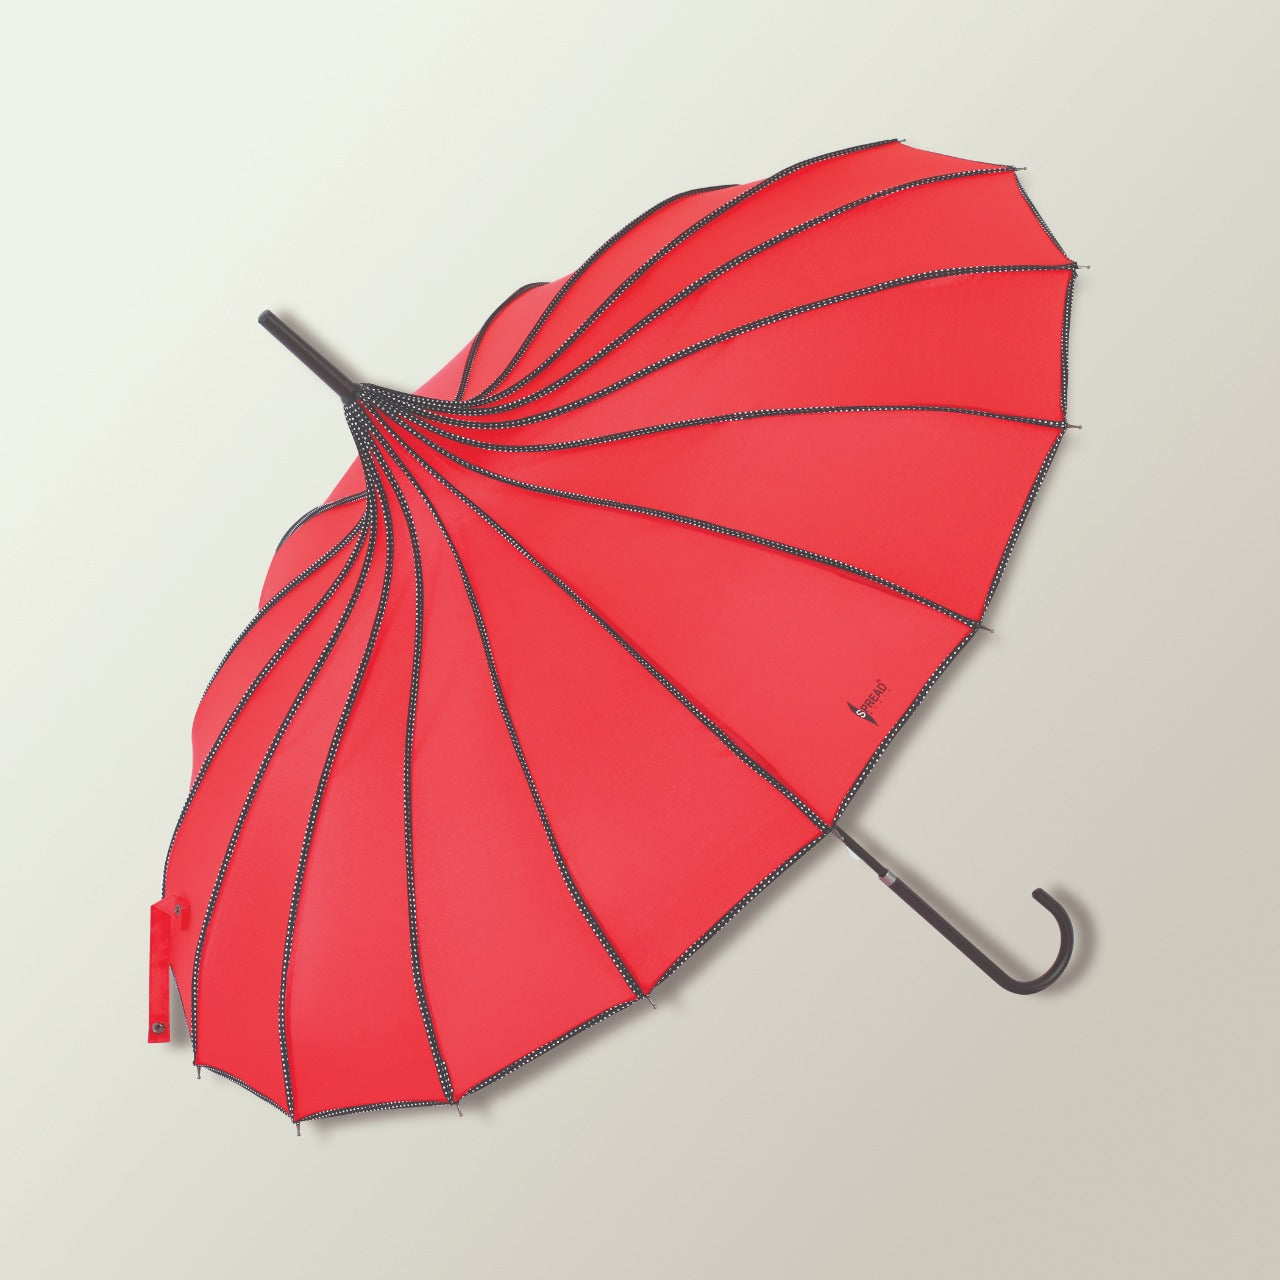 Pagoda Shaped Long Umbrella - Red